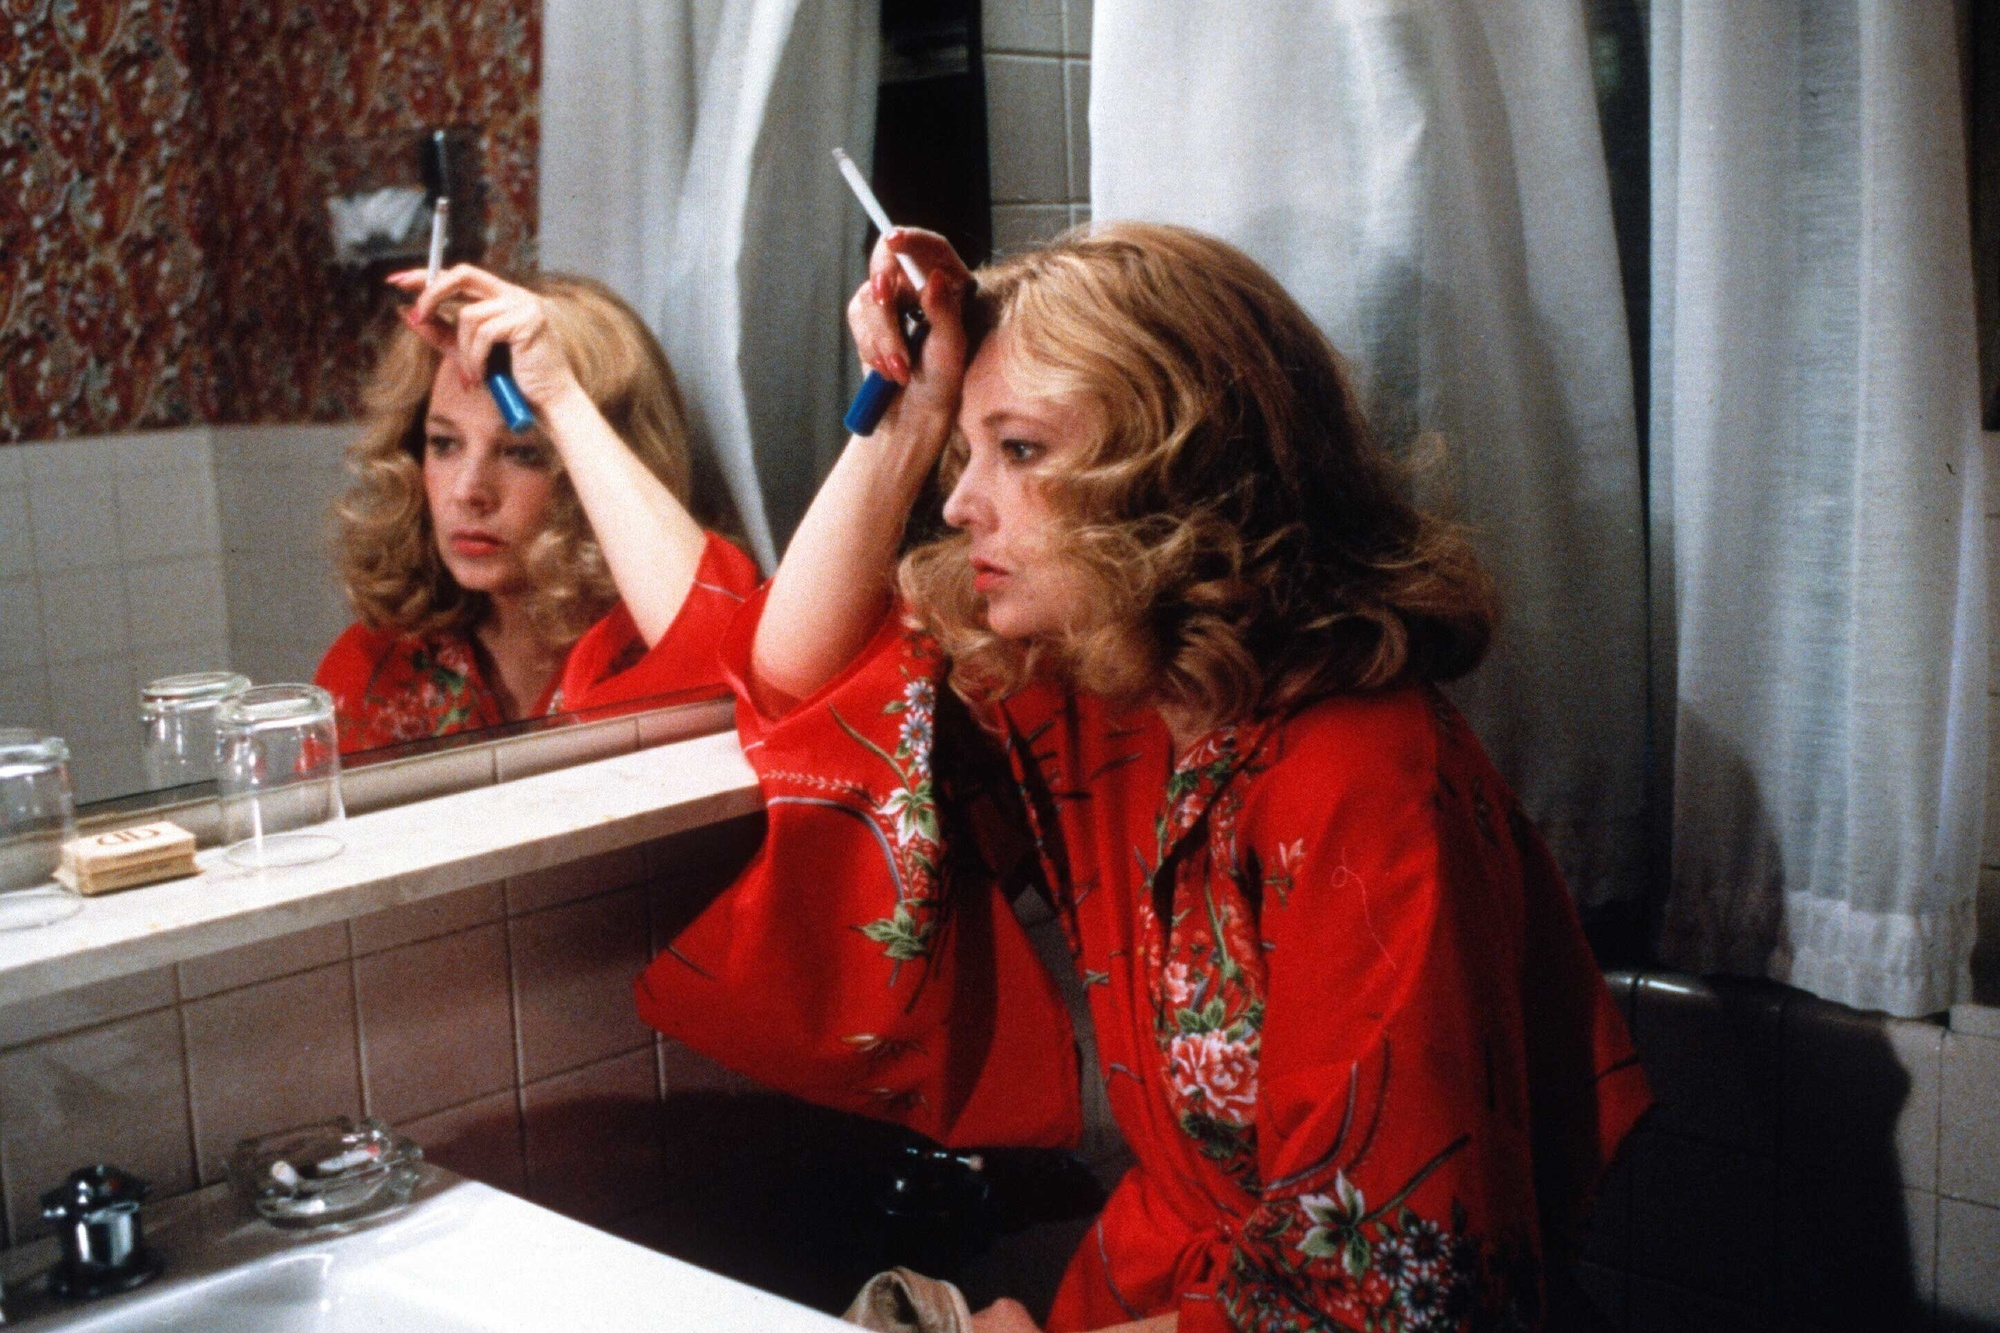 Gloria. 1980. USA. Written and directed by John Cassavetes. Courtesy of Columbia Pictures/Photofest. © Columbia Pictures